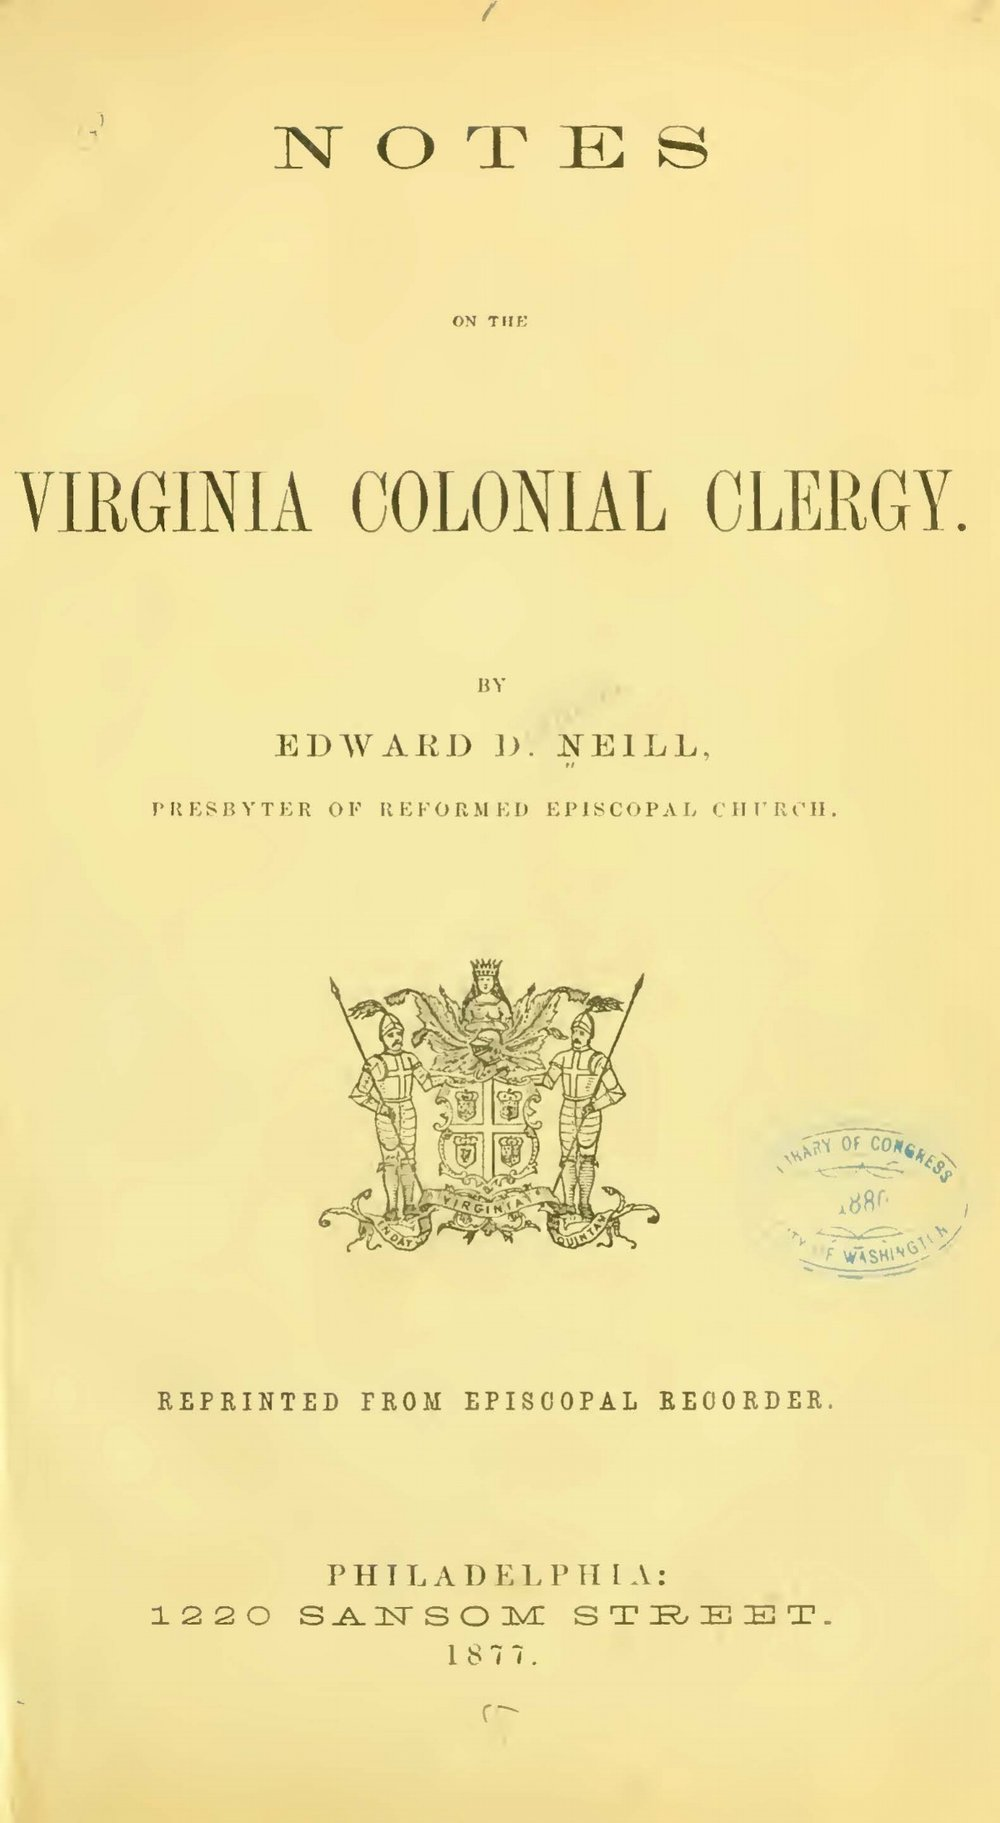 Neill, Edward Duffield, Notes on the Virginia Colonial Clergy Title Page.jpg